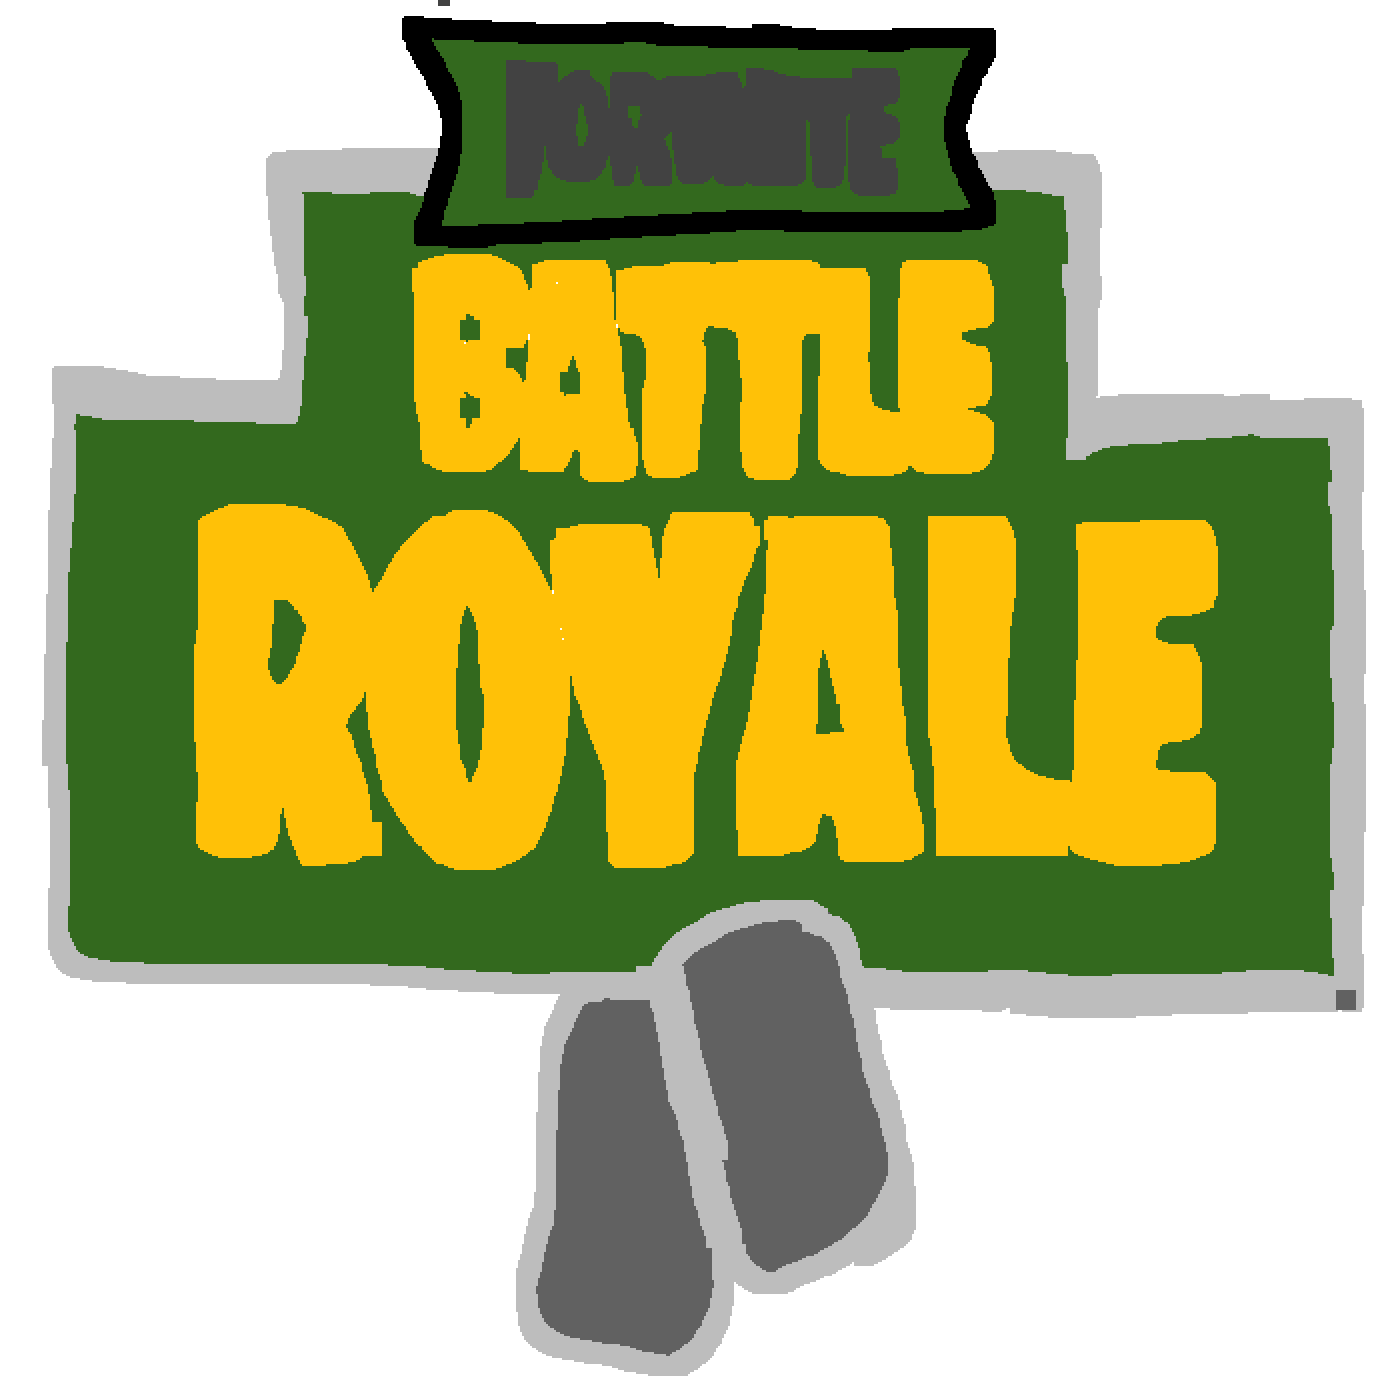 Fortnite llama png logo. Pixilart battle royal by